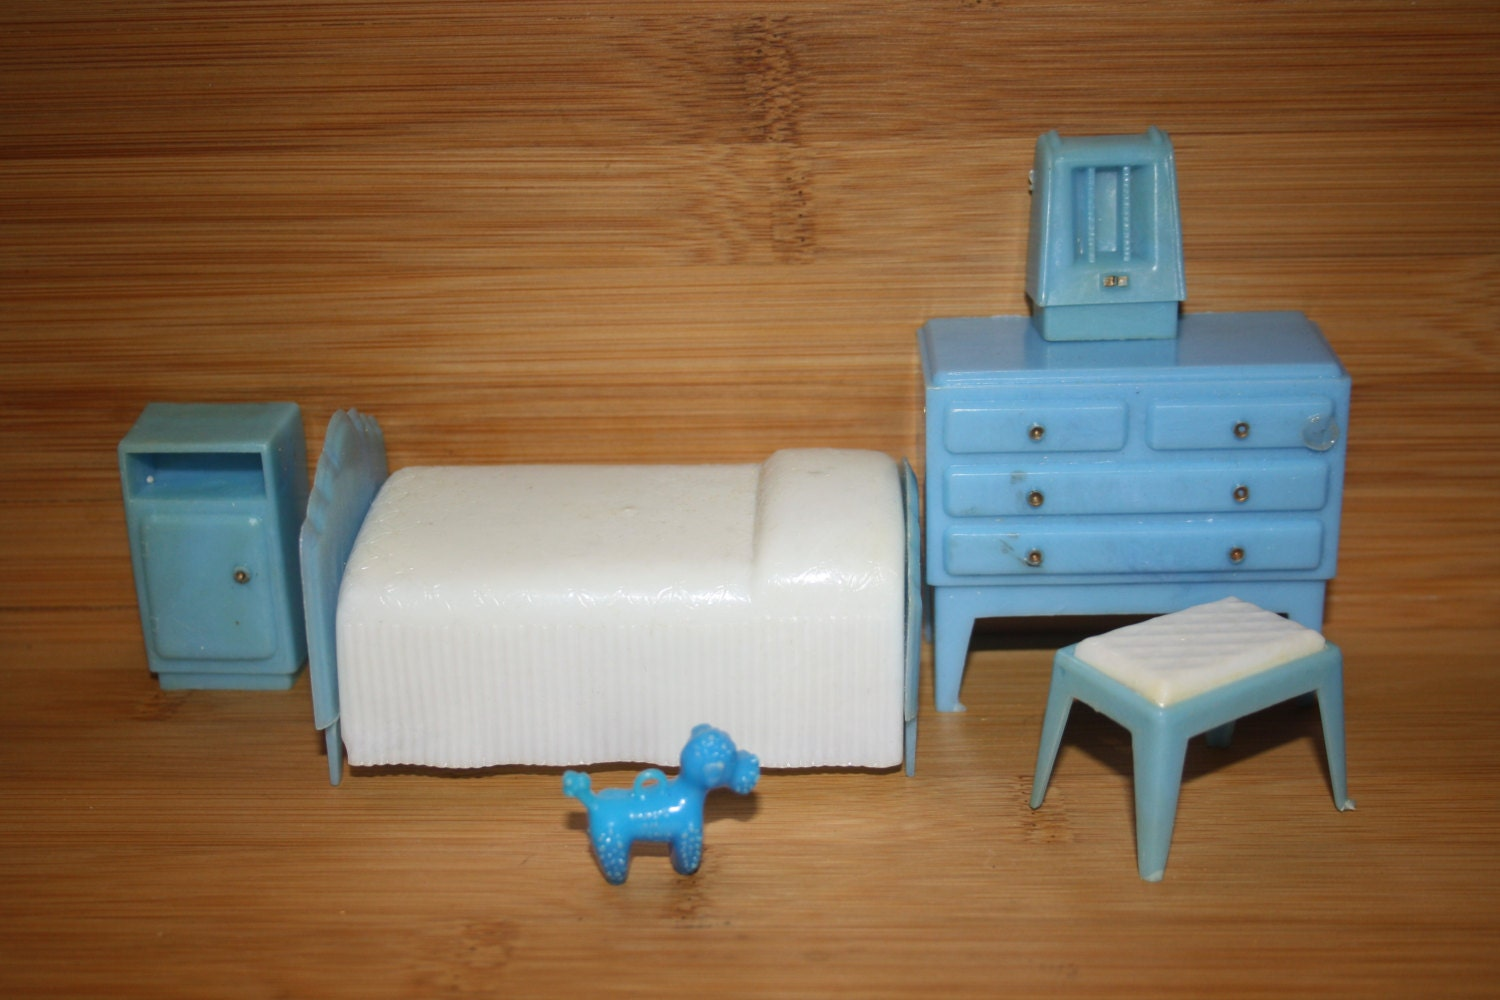 Vintage 60 s 70 s plastic dolls house furniture bedroom set bed chest of drawers radio stool Plastic bedroom furniture